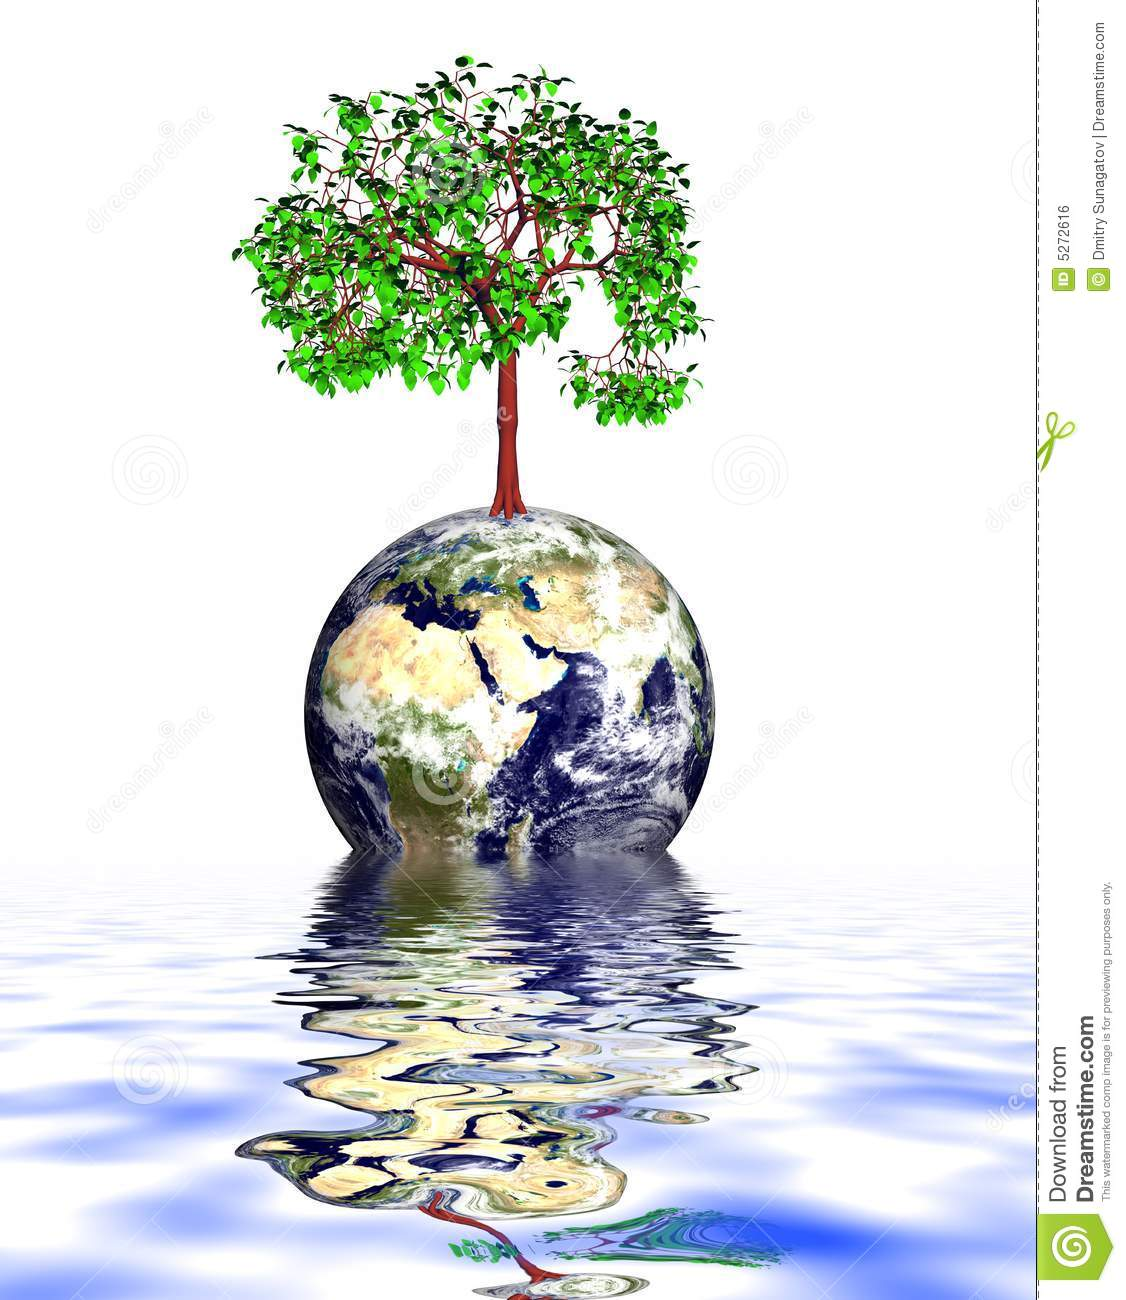 earth essay for kids Layers of the earth facts let's explore some facts about the layers of the earth then, why not take a look at our question sheet in the activity section at the end to test what you have.